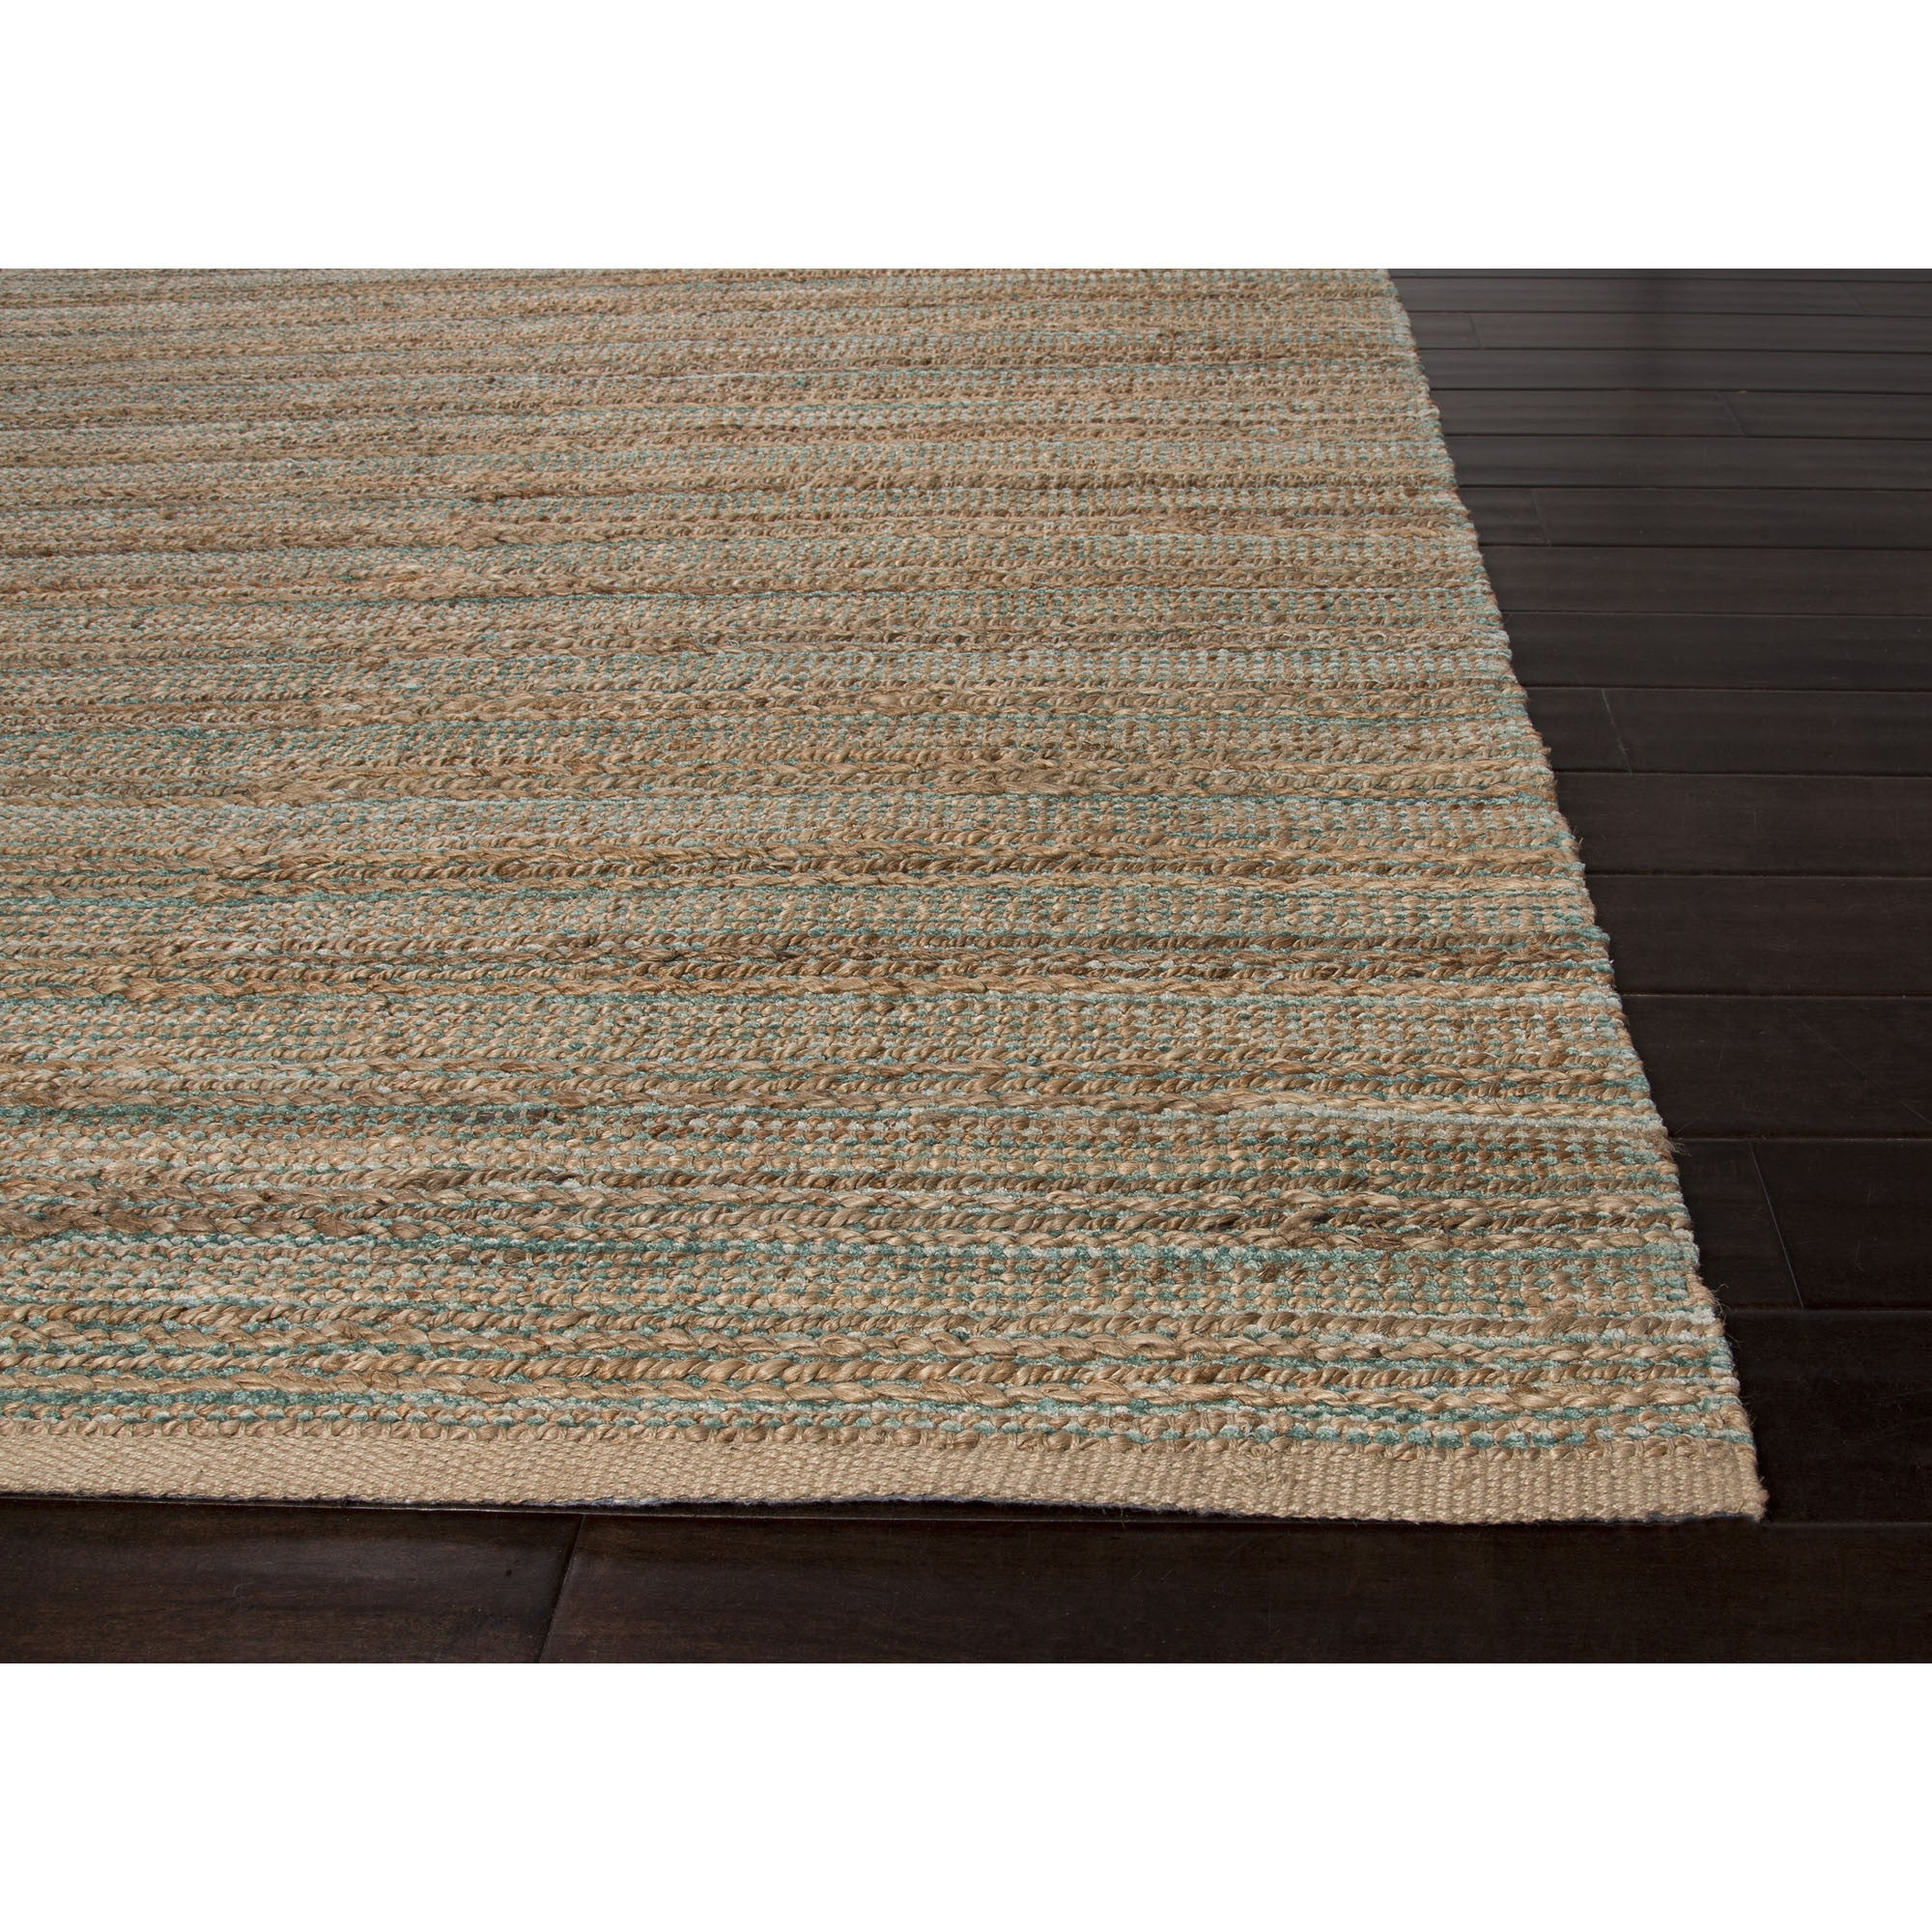 Jaipur Rugs Naturals Solid Pattern Taupe Green Jute And